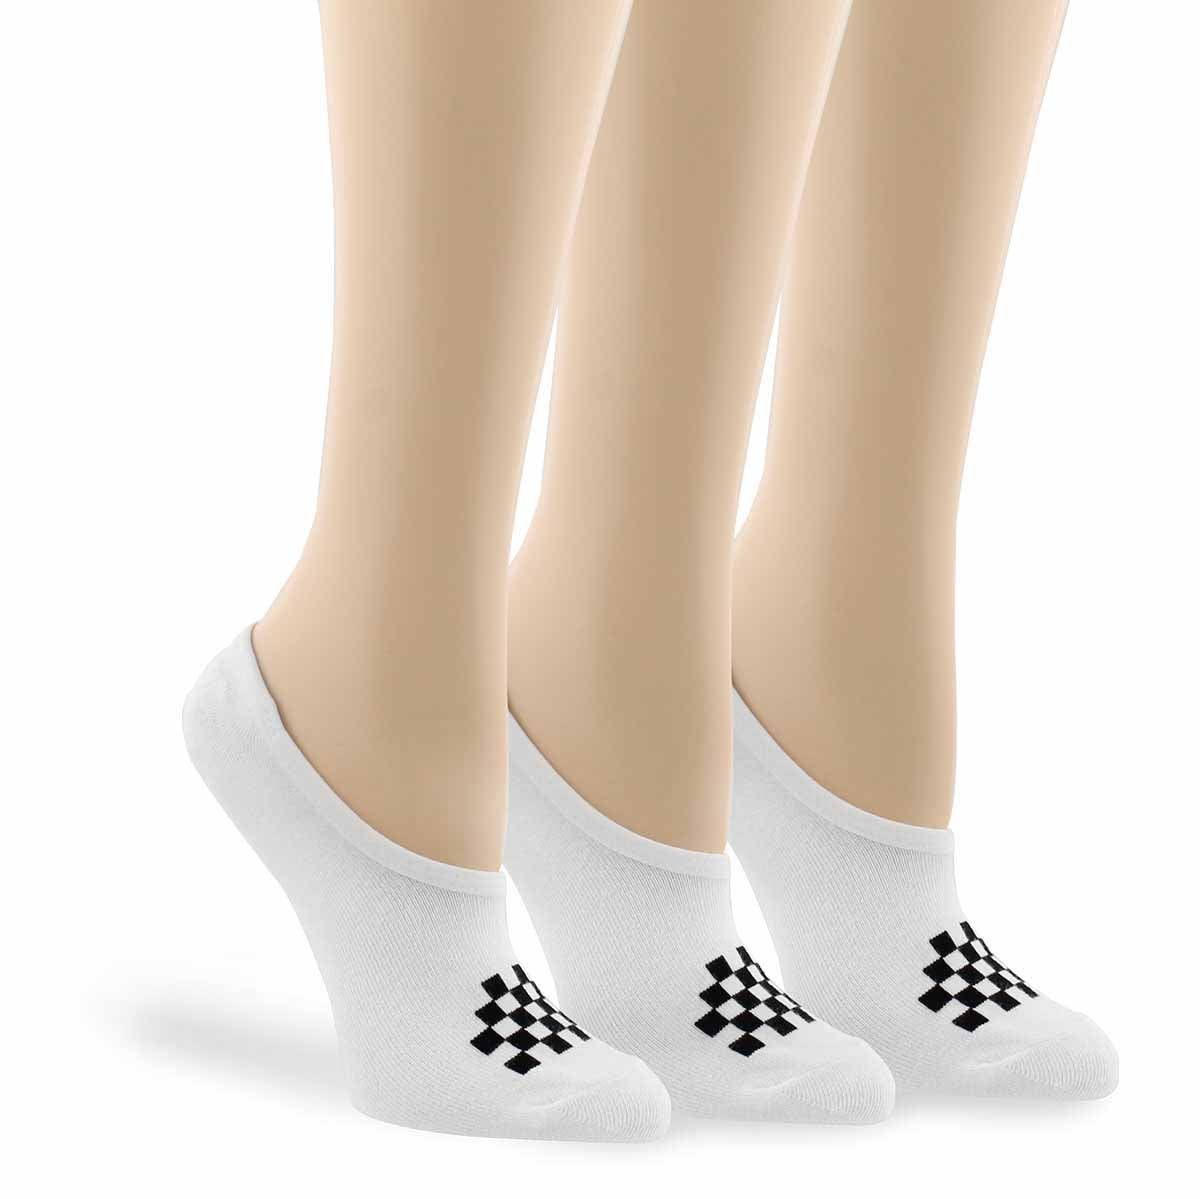 Women's CLASSIC CANOODLE white/black ankle socks